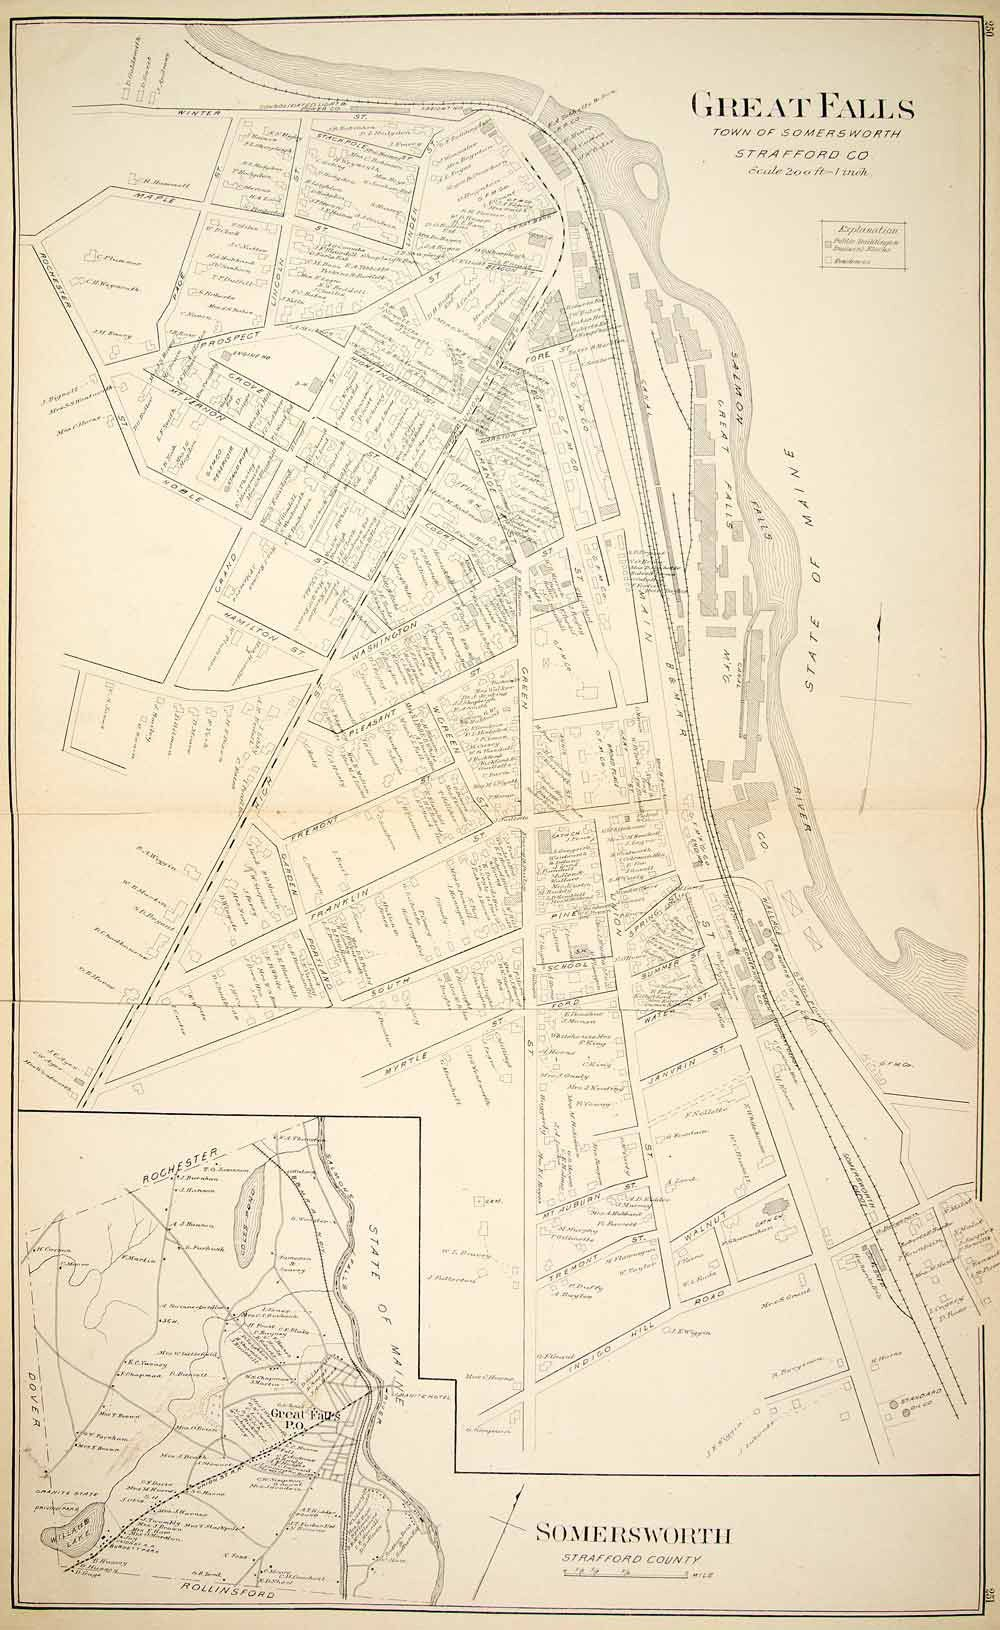 1892 Lithograph Map City Great Falls Somersworth Strafford County